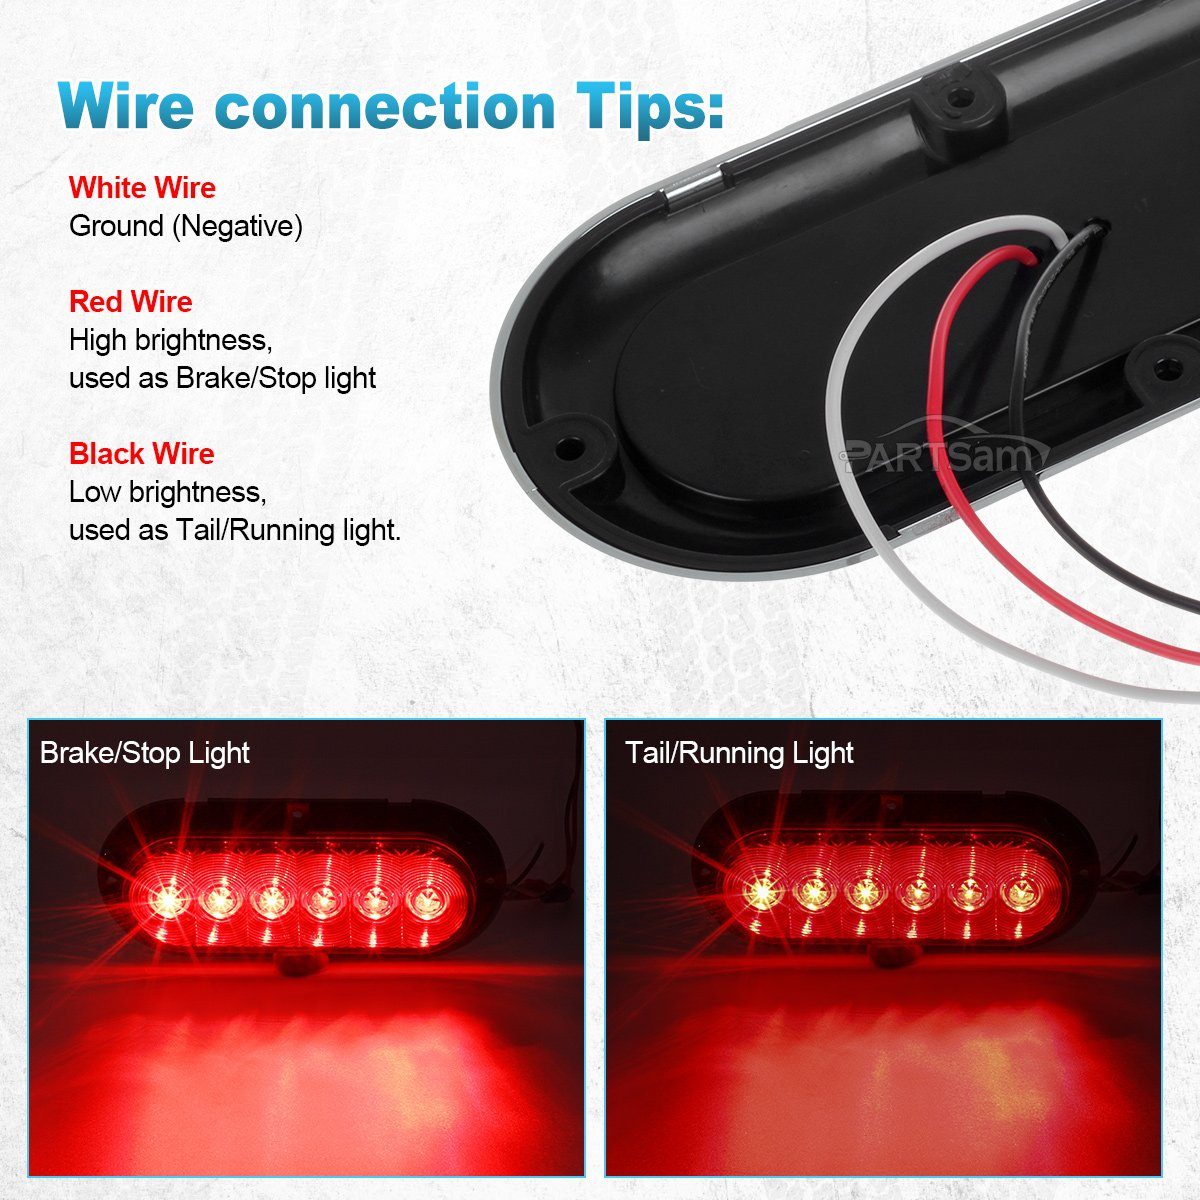 Partsam 2x Red 6 Oval Sealed Led Stop Turn Tail Wiring A Light Fixture With Black And White Wires Trailer Truck Lights W Chrome Bezels Surface Mount Automotive